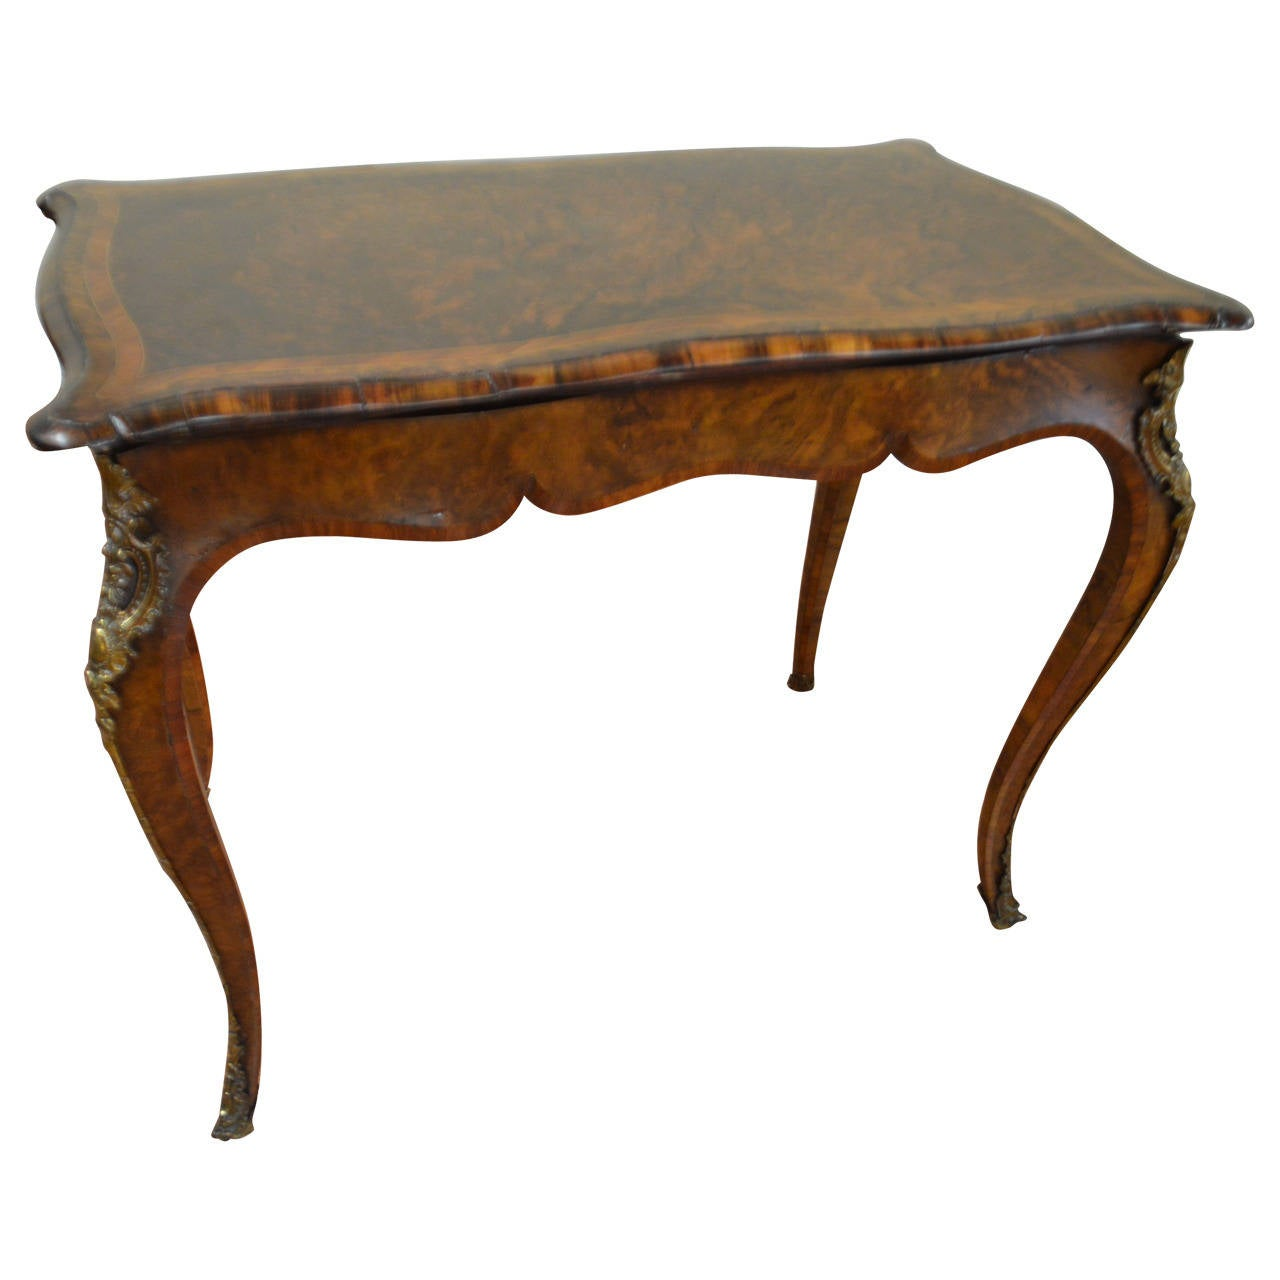 Louis xv style burled mahogany games table at 1stdibs - Table louis xv ...